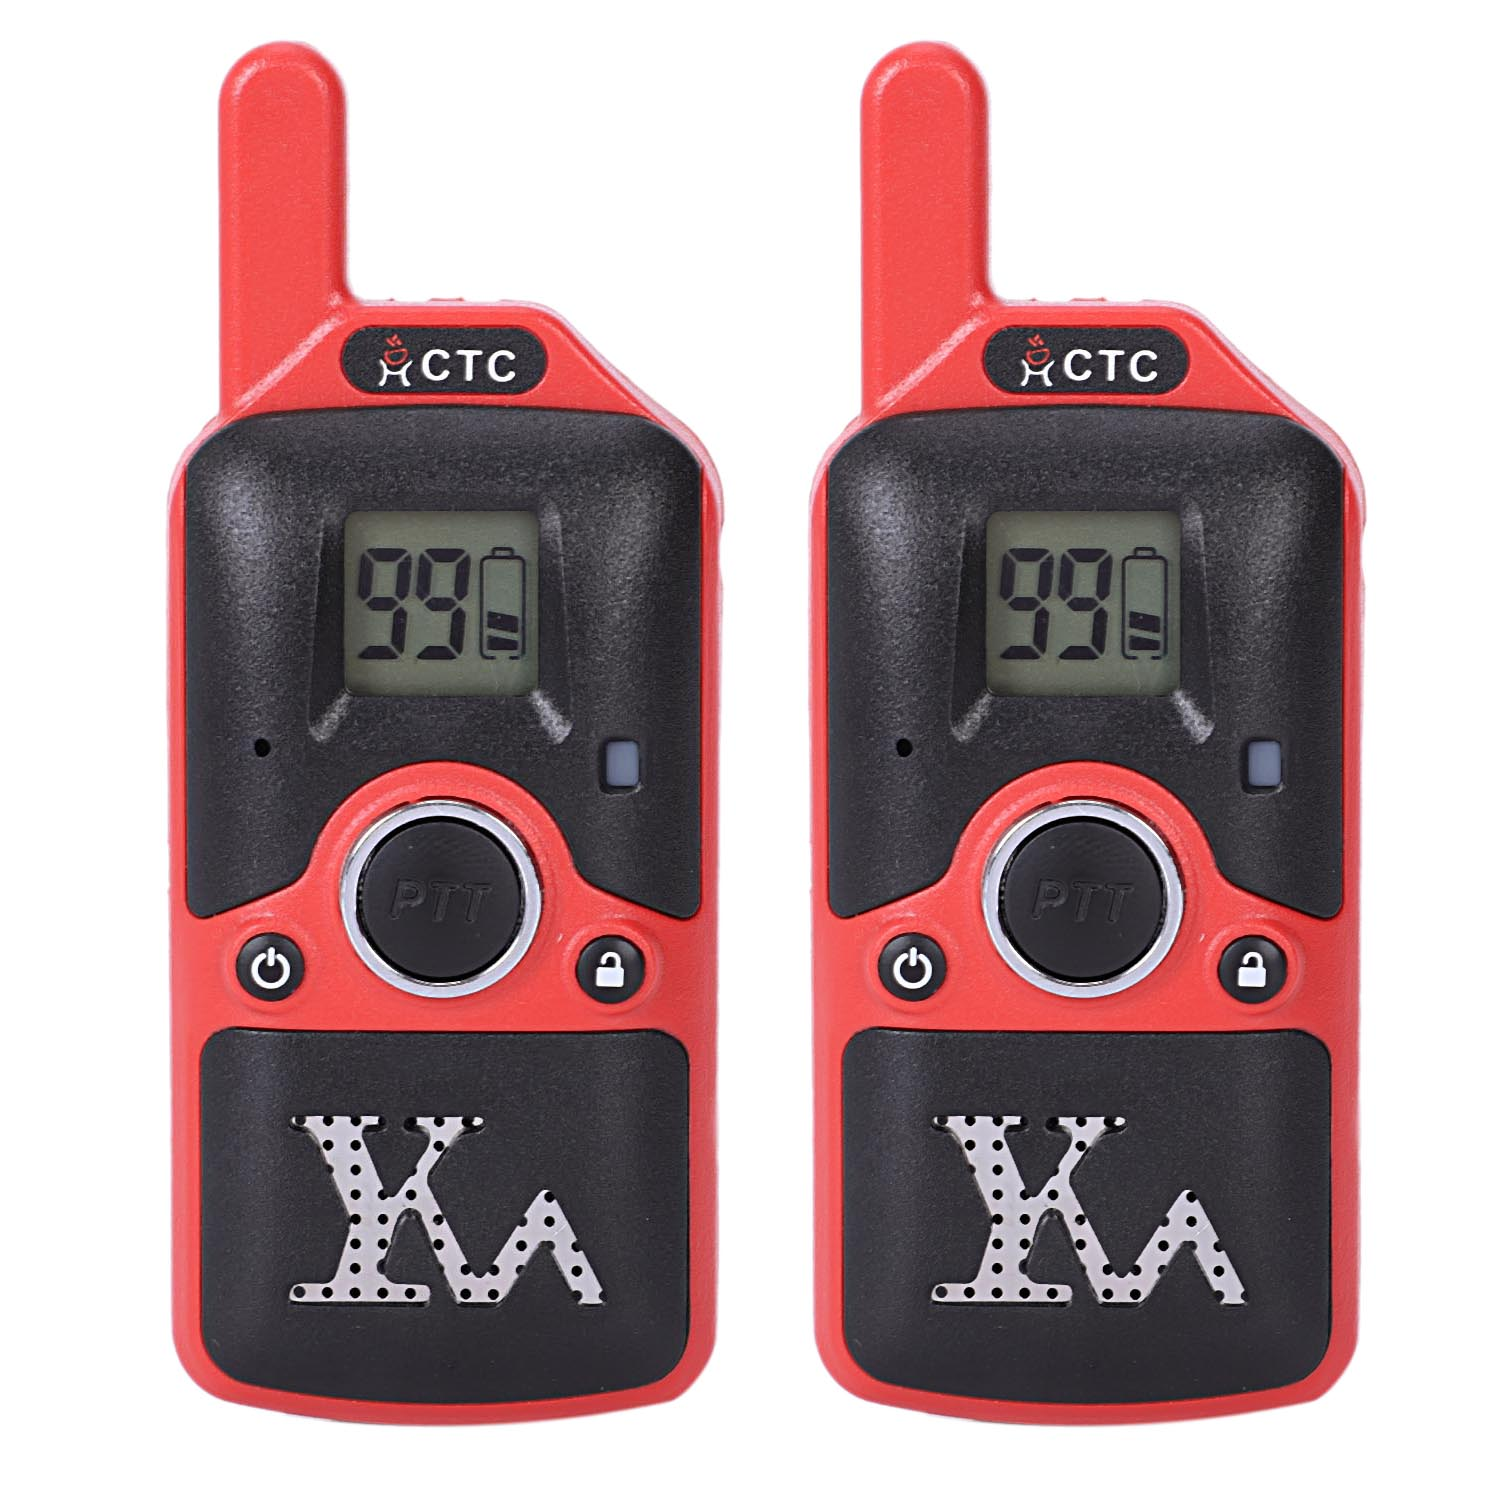 Carter Cool 2Pcs Dh-U8 Mini Walkie Talkie Kids Children Radio 1.5W 400-480Mhz Free Frequency 99 Channel